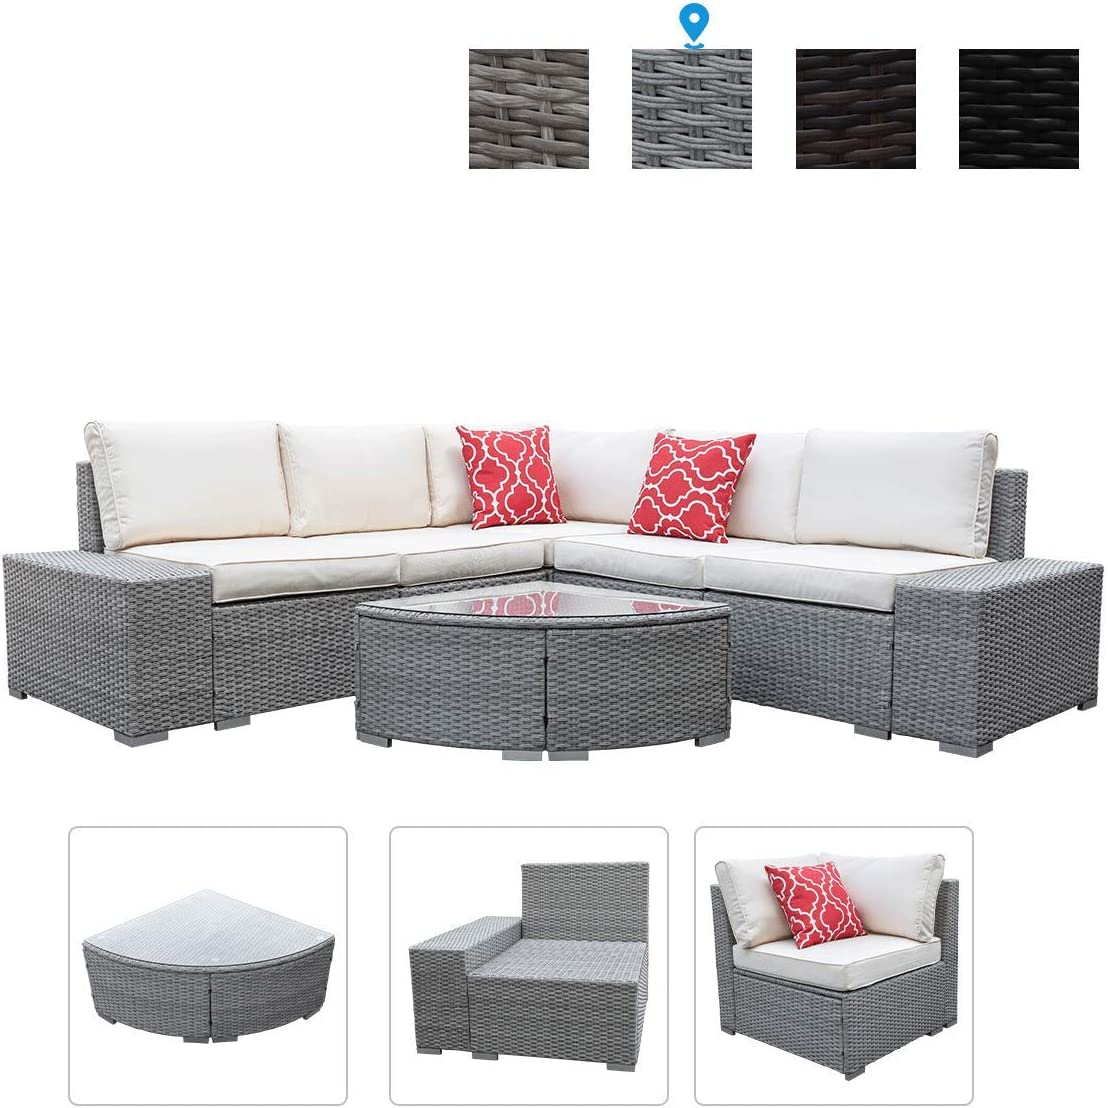 6 Pieces Outdoor Patio Furniture Set All-Weather Manual Weaving Wicker PE Rattan Sofa Conversation Set